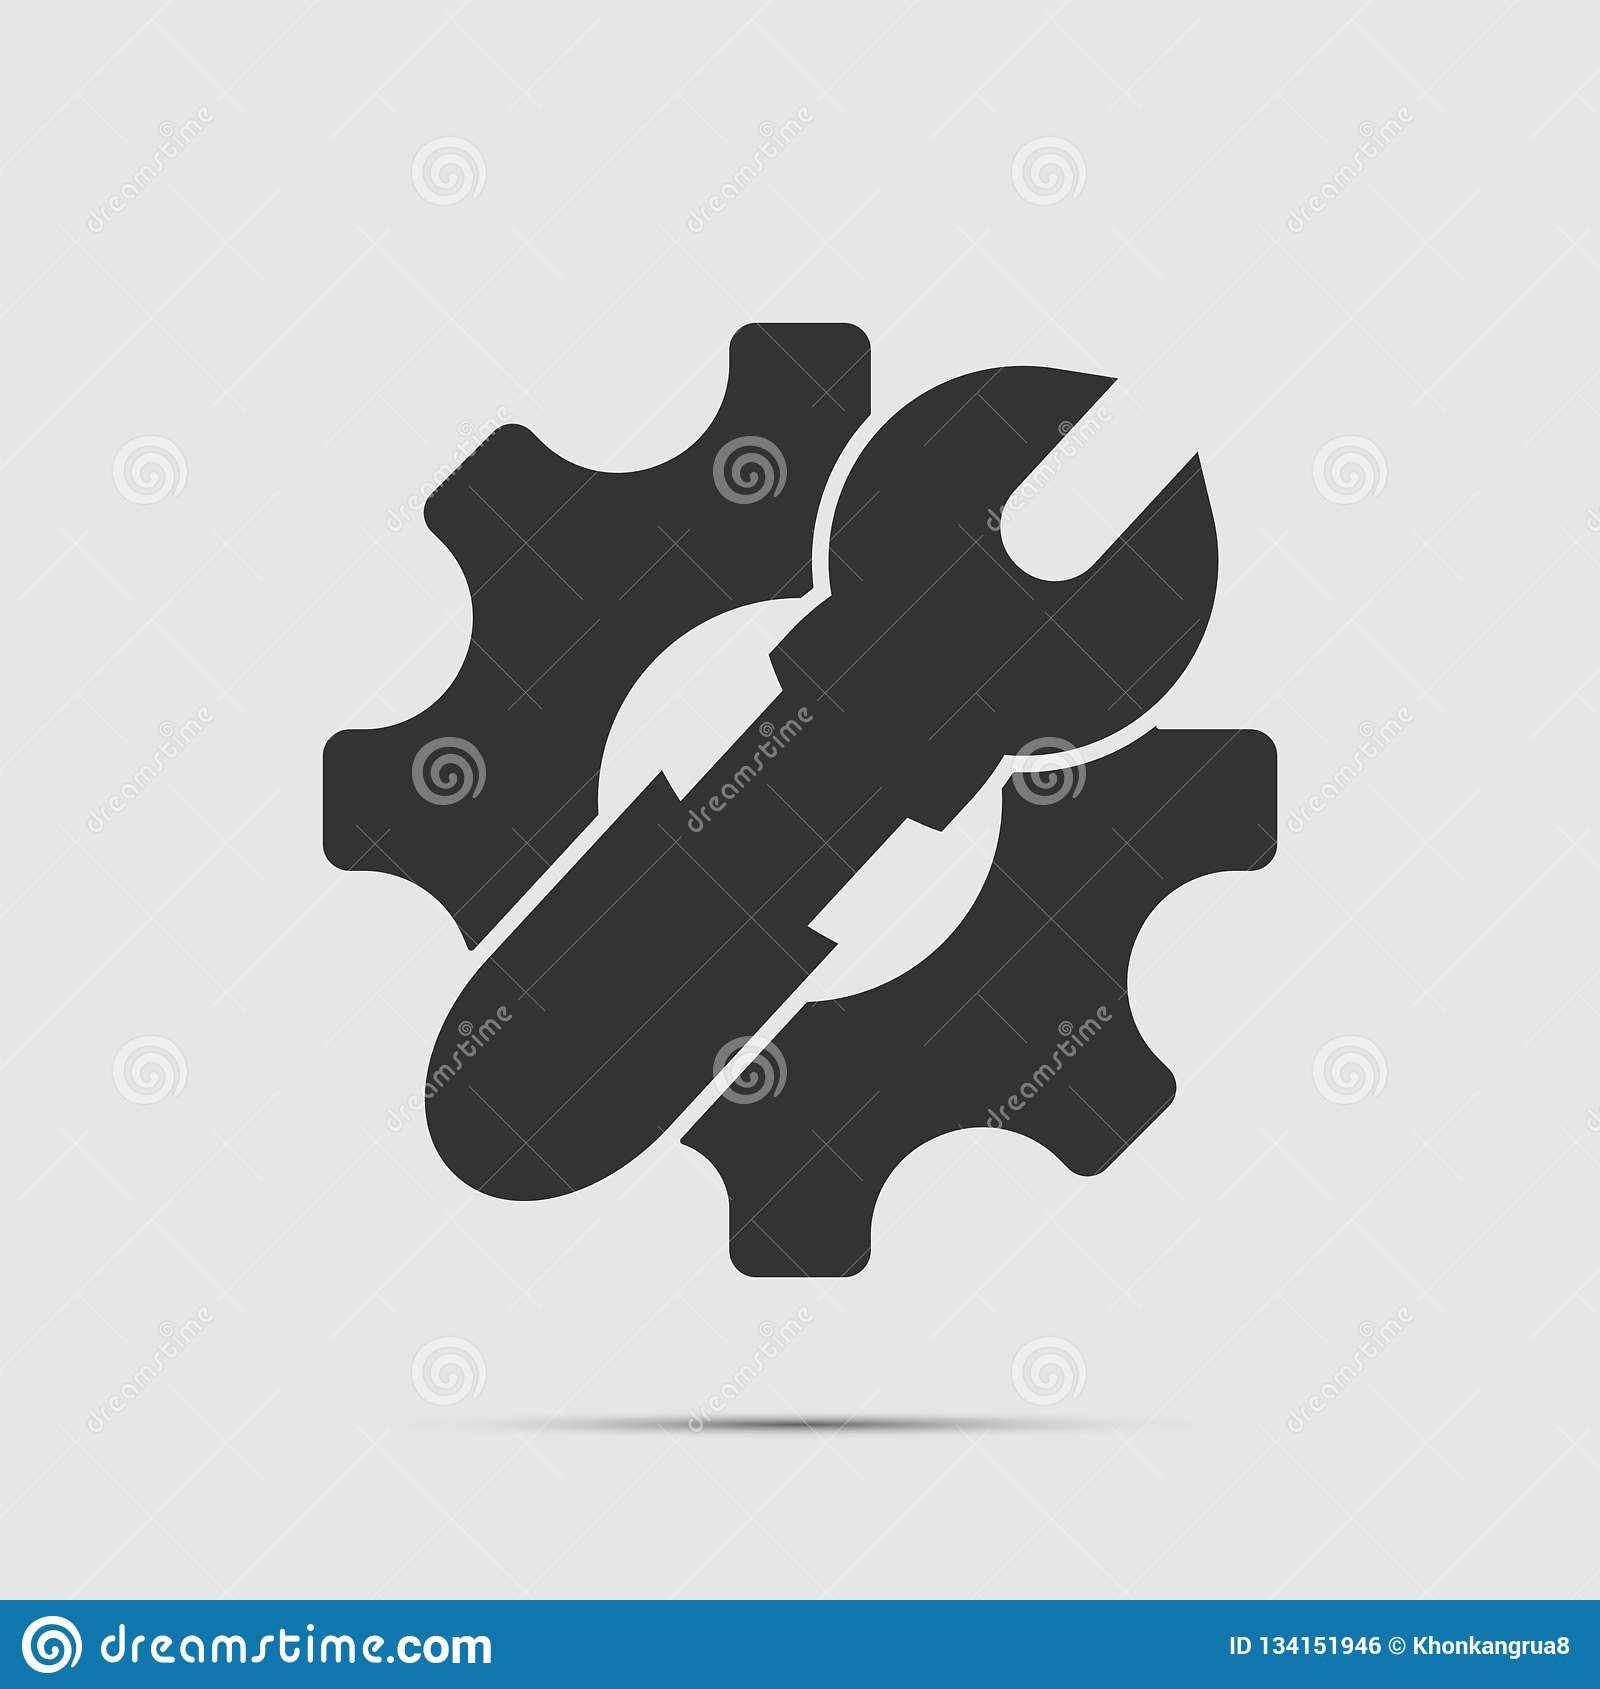 Service Tool icon on white background,technology, industry, flat, equipment,